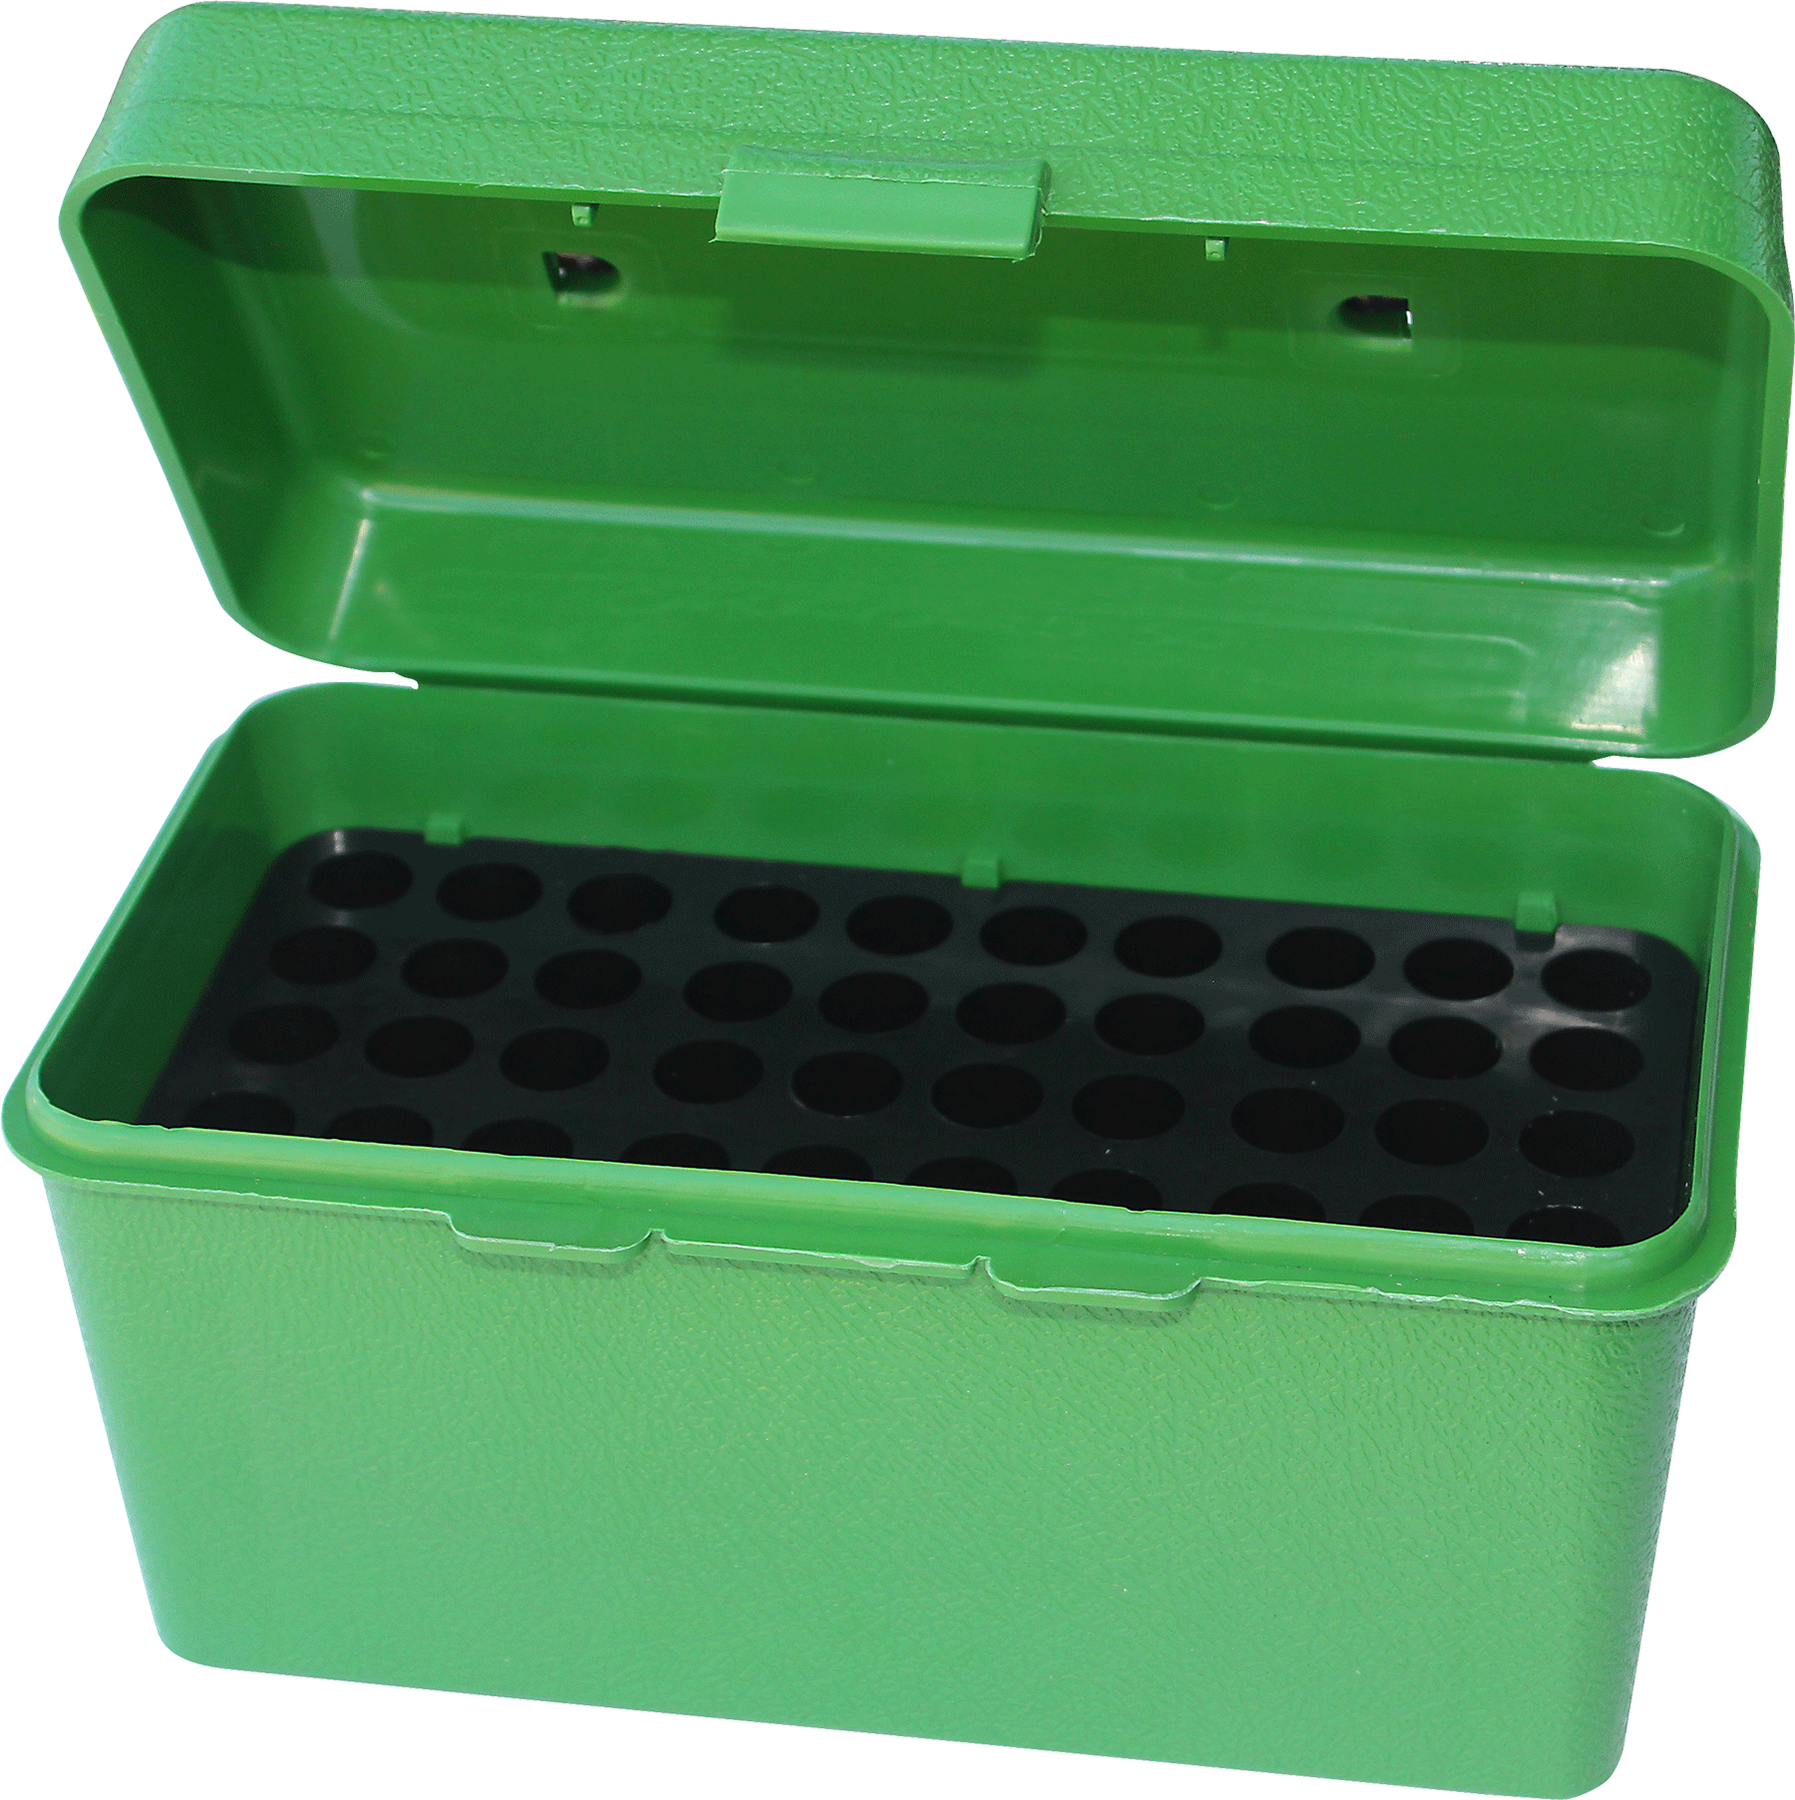 MTM Deluxe H-50 Handled Large Rifle Ammo Box 4.1